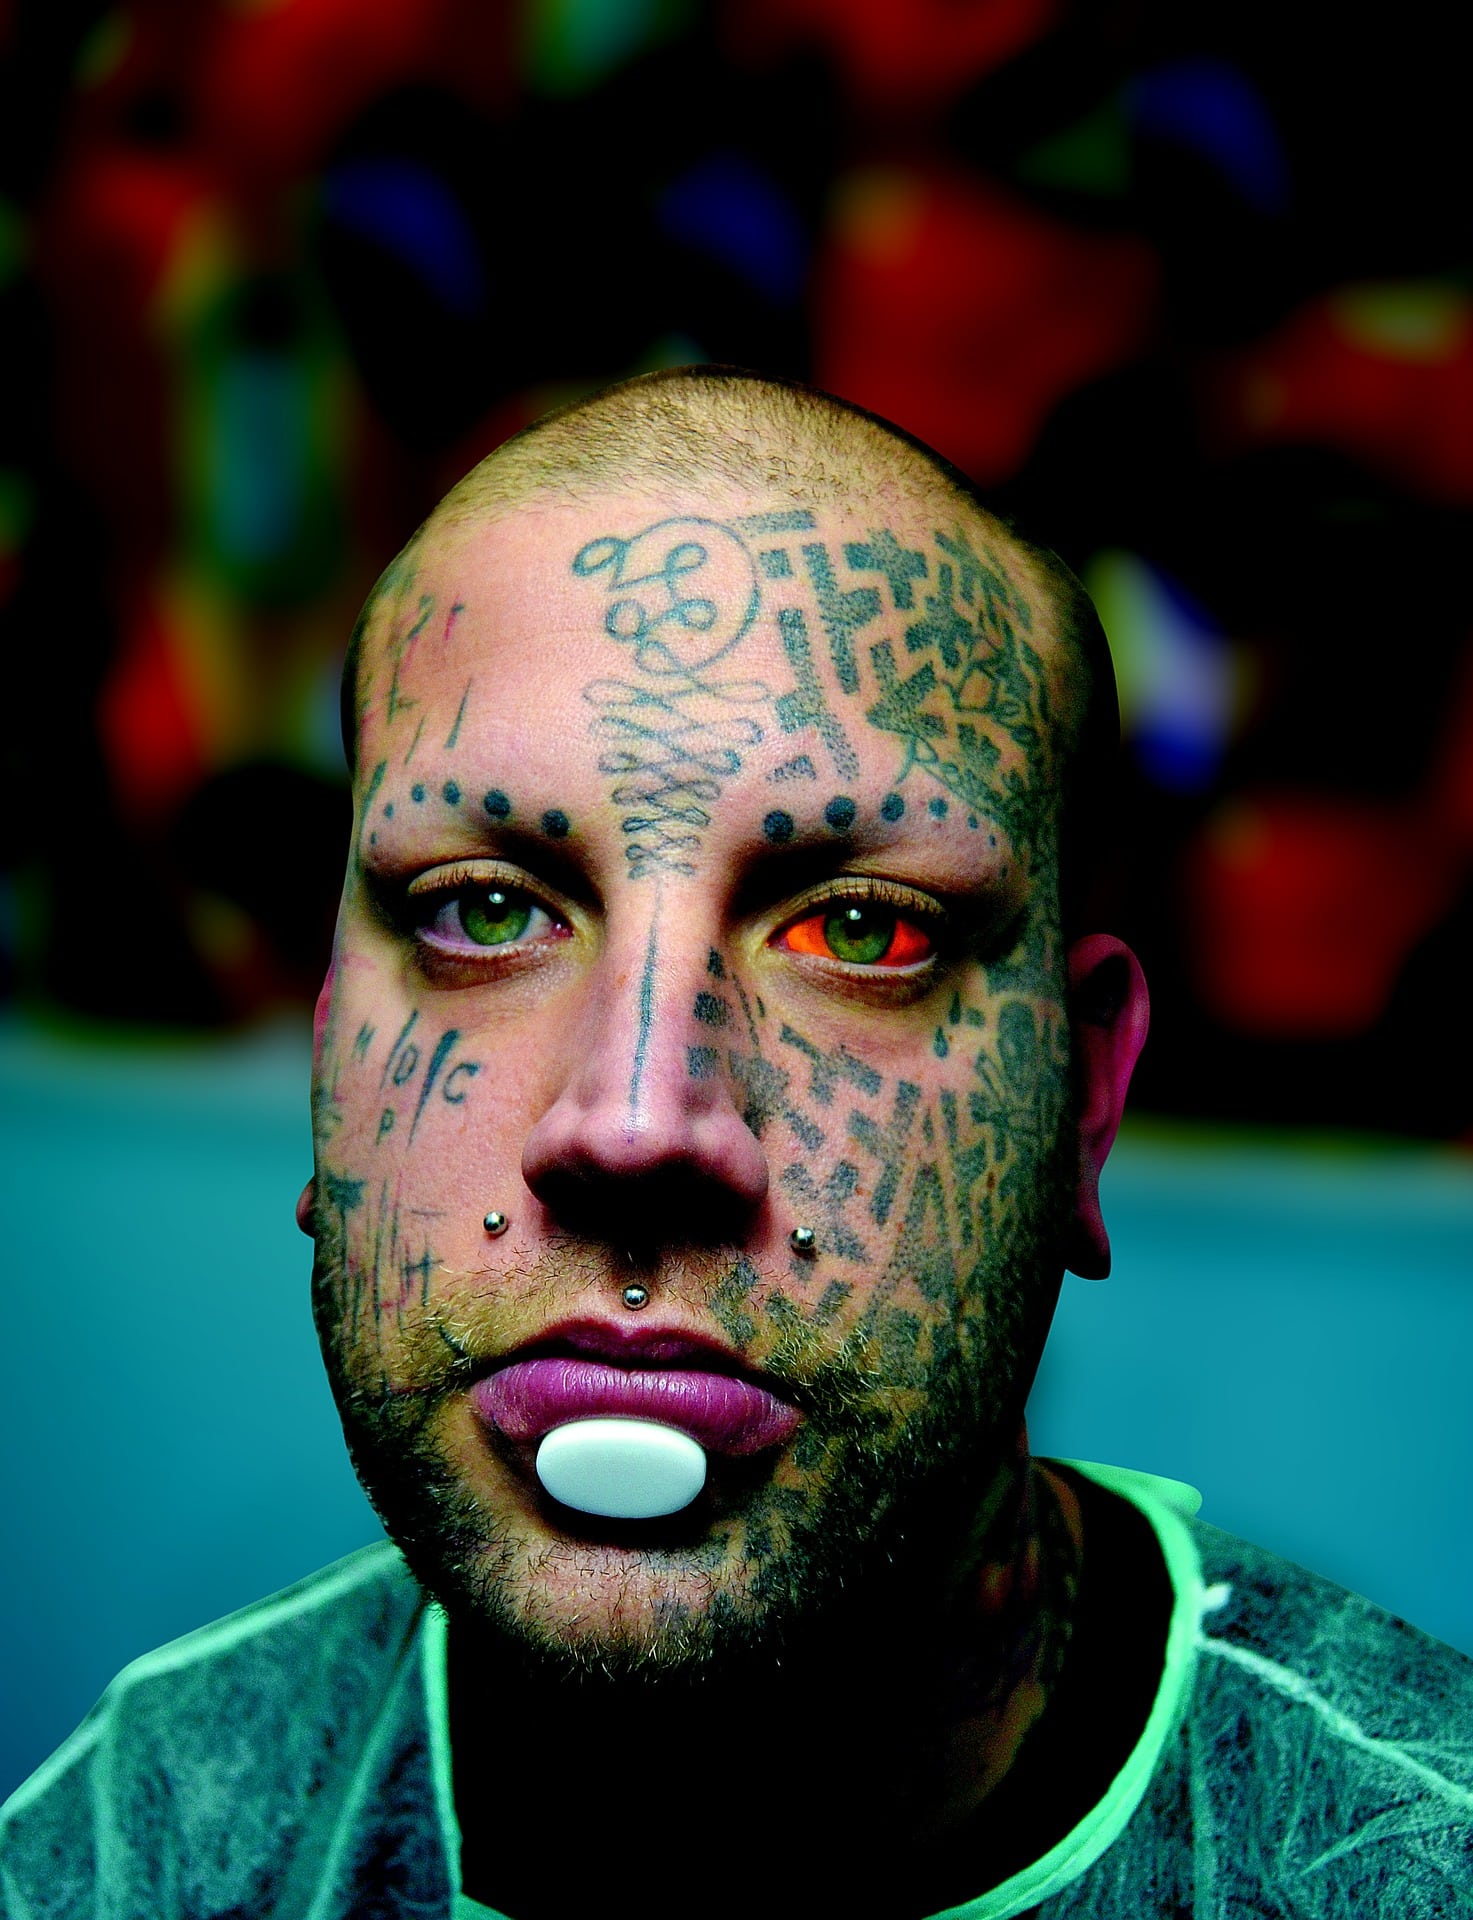 Tattoos on Face|The Holy Mess